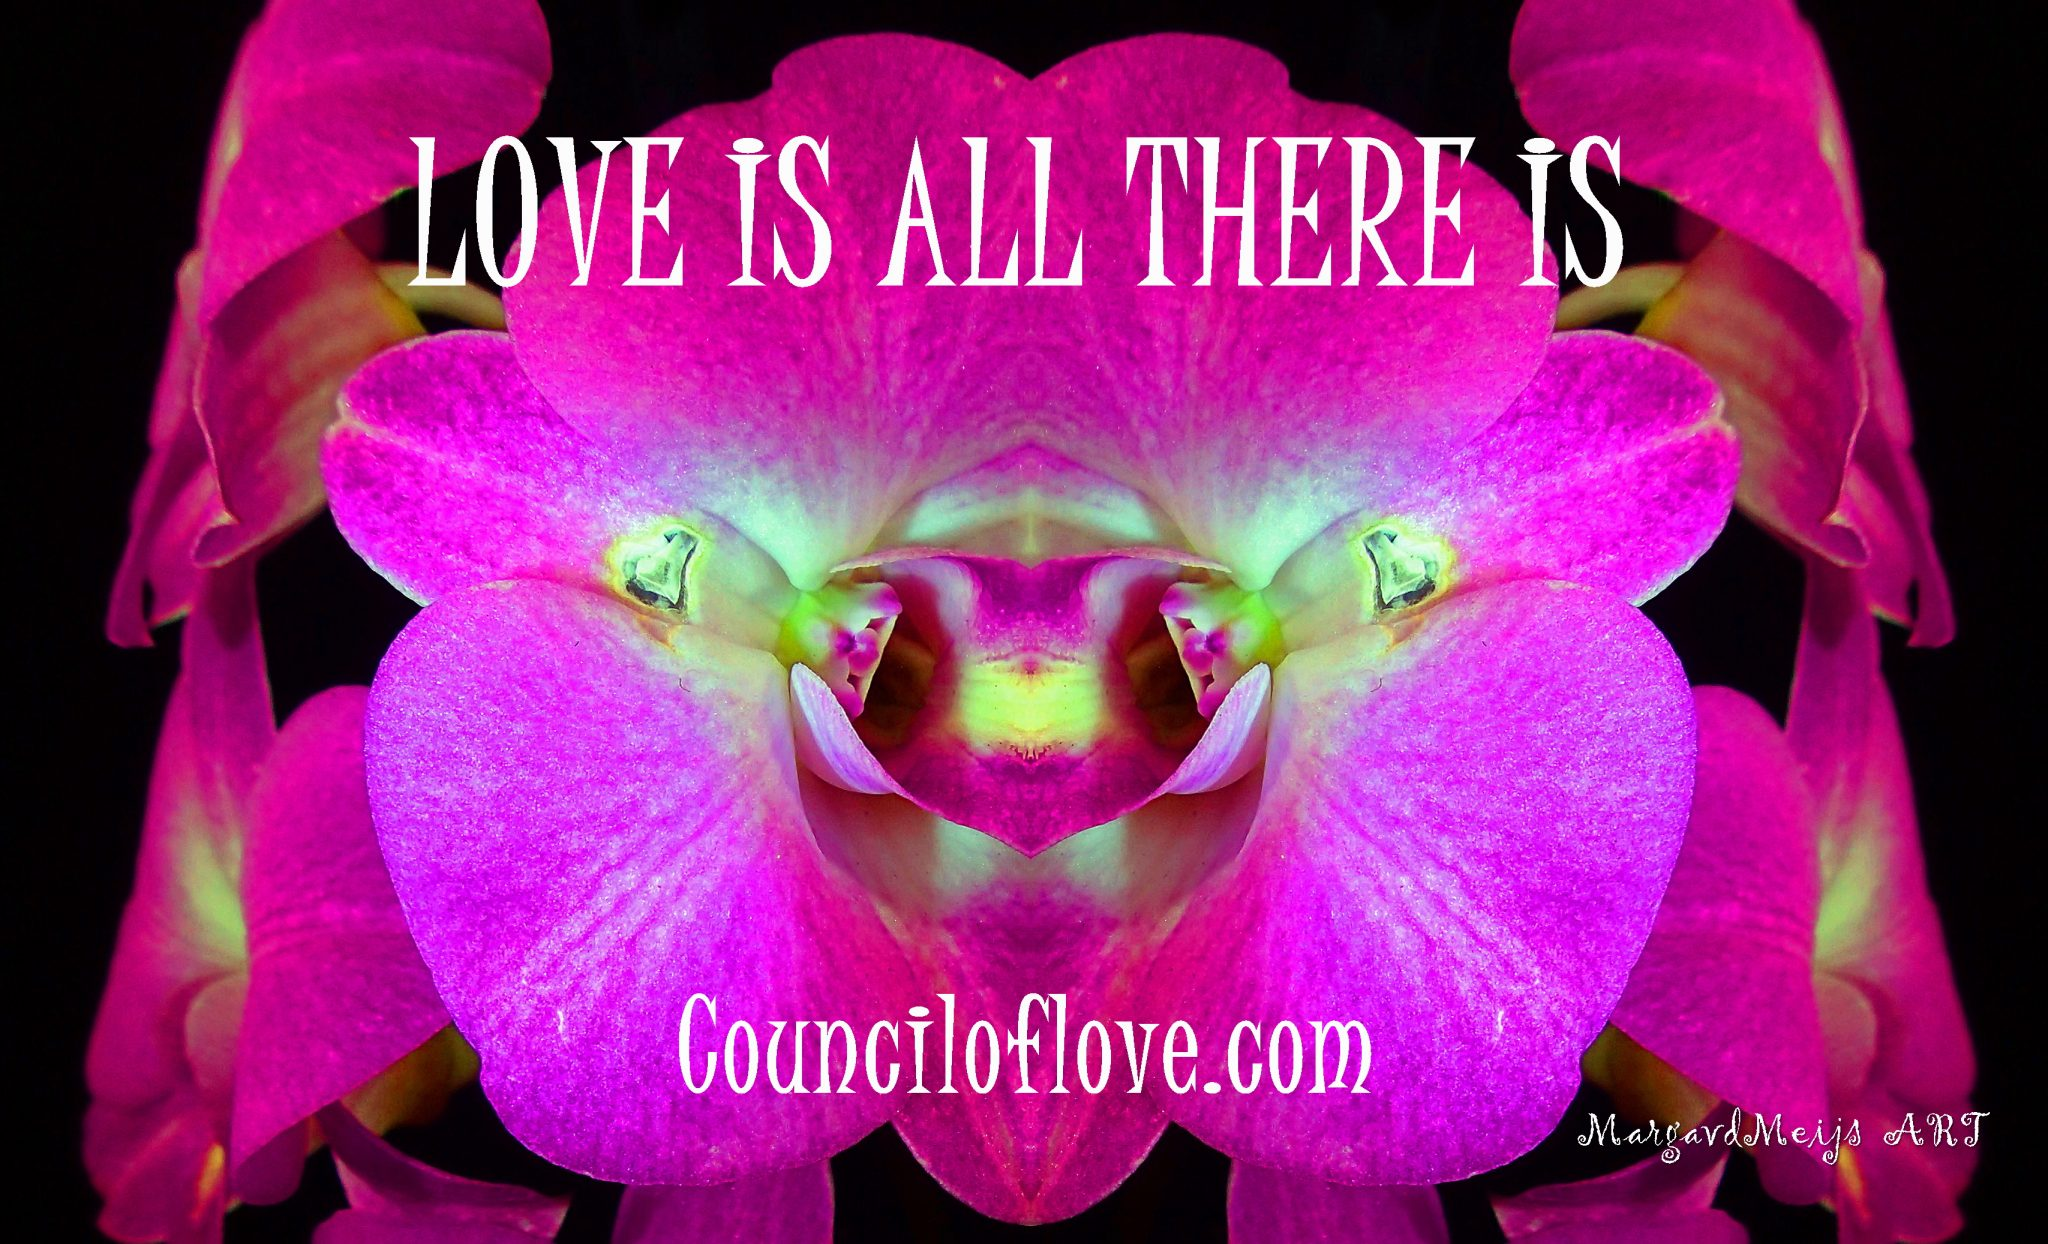 Love-is-all-there-is.jpg?width=206